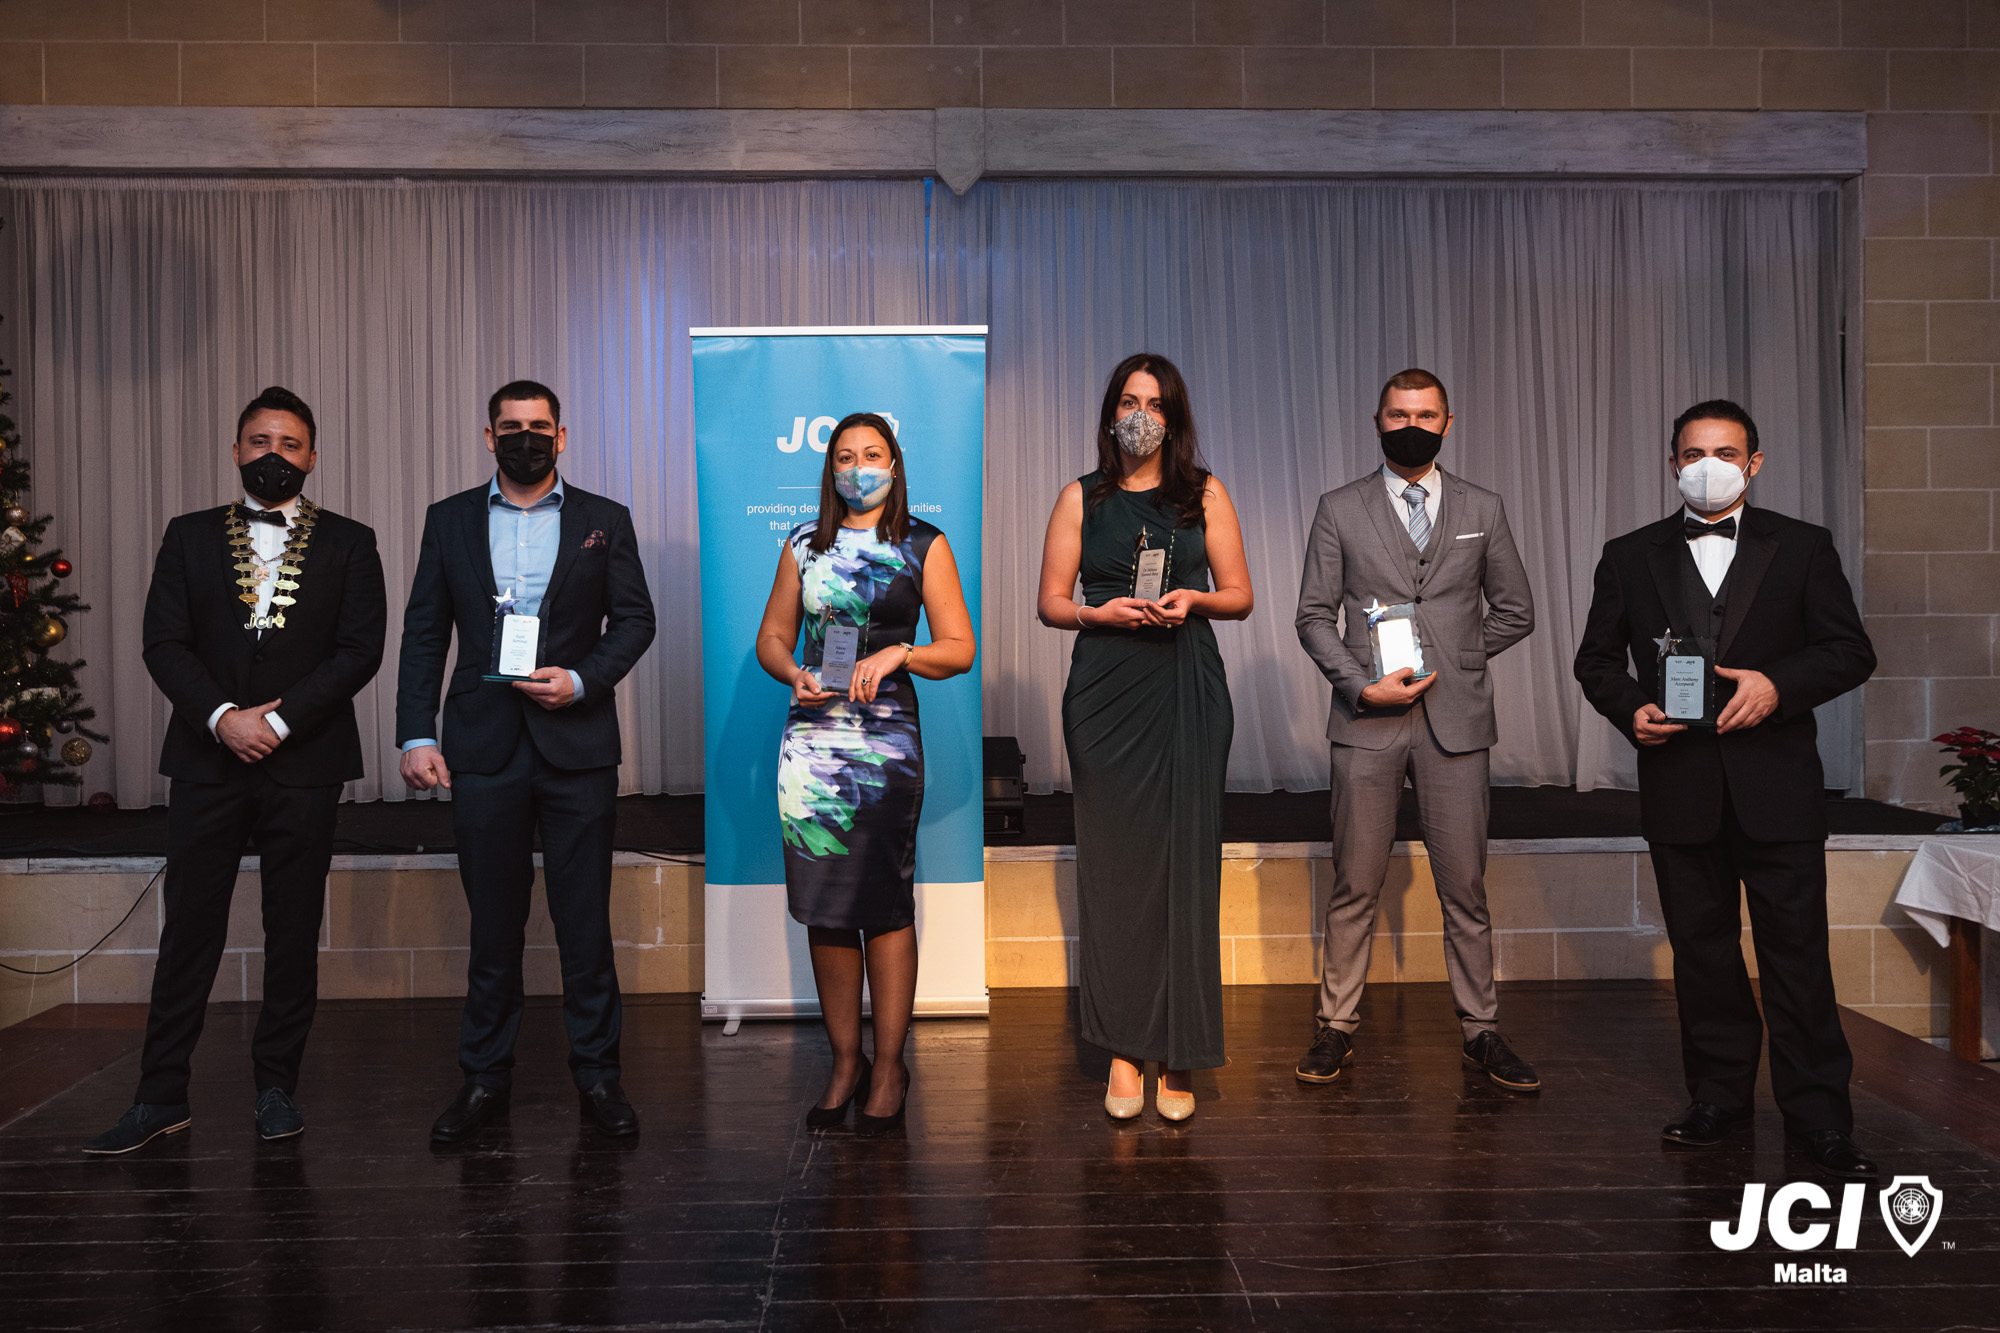 JCI Malta awards the Ten Most Outstanding Young People for 2020 - Newsbook